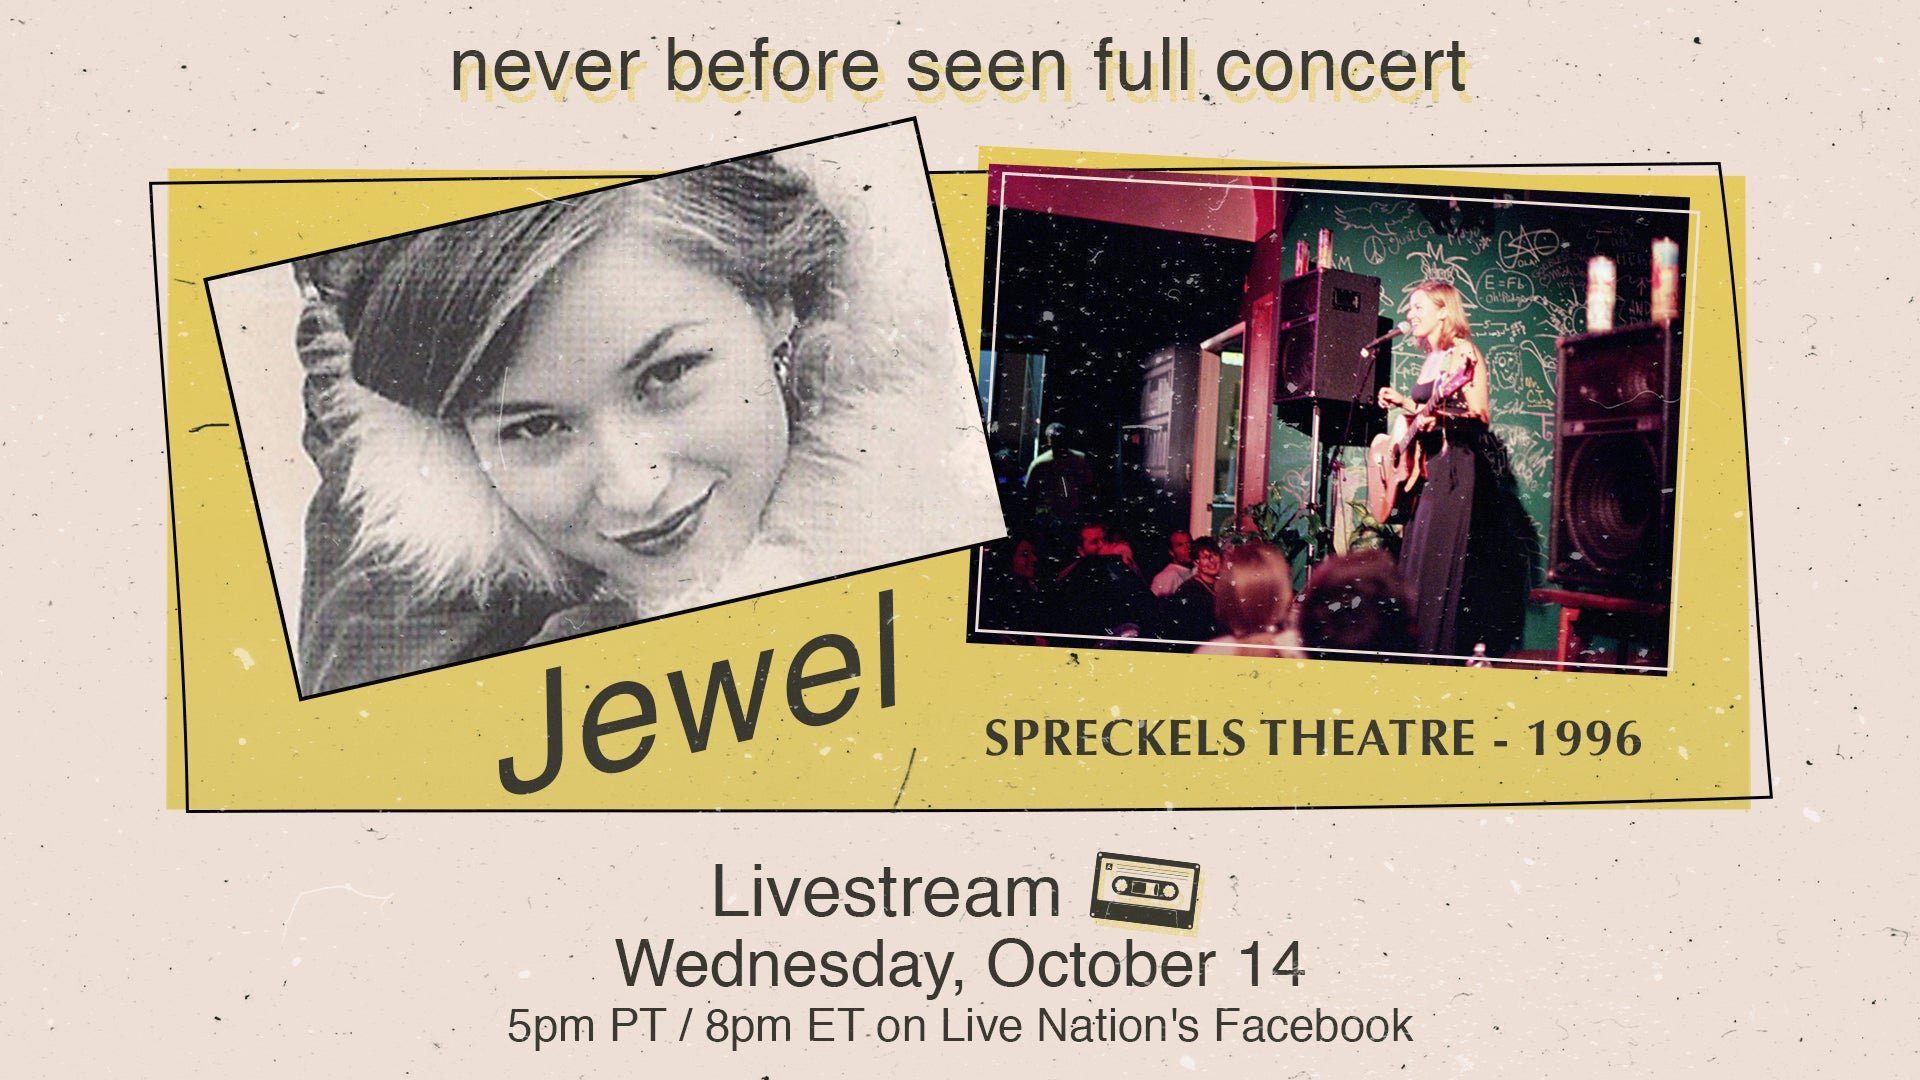 JEWEL ANNOUNCES LIVE STREAM OF 1996 NEVER-BEFORE-SEEN FULL CONCERT